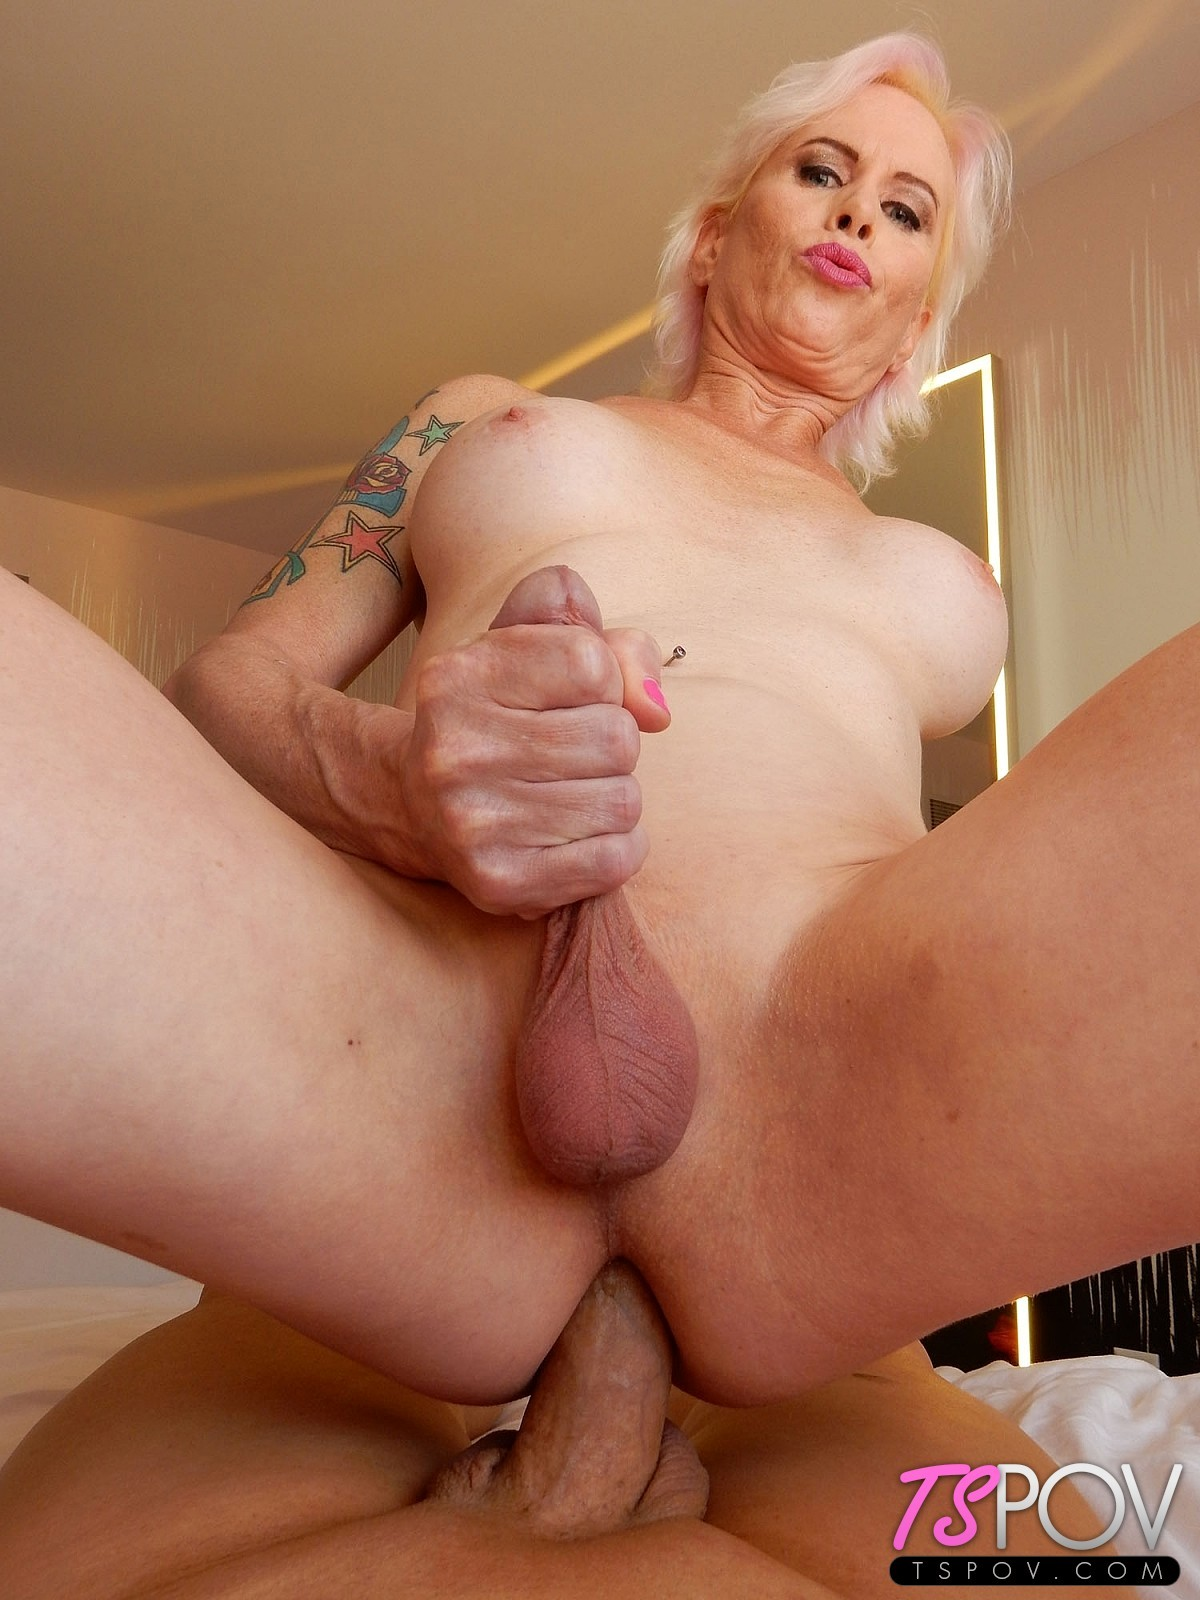 Nadia Vixen Is A Tall, Starved TS Girl That Desires Playing With